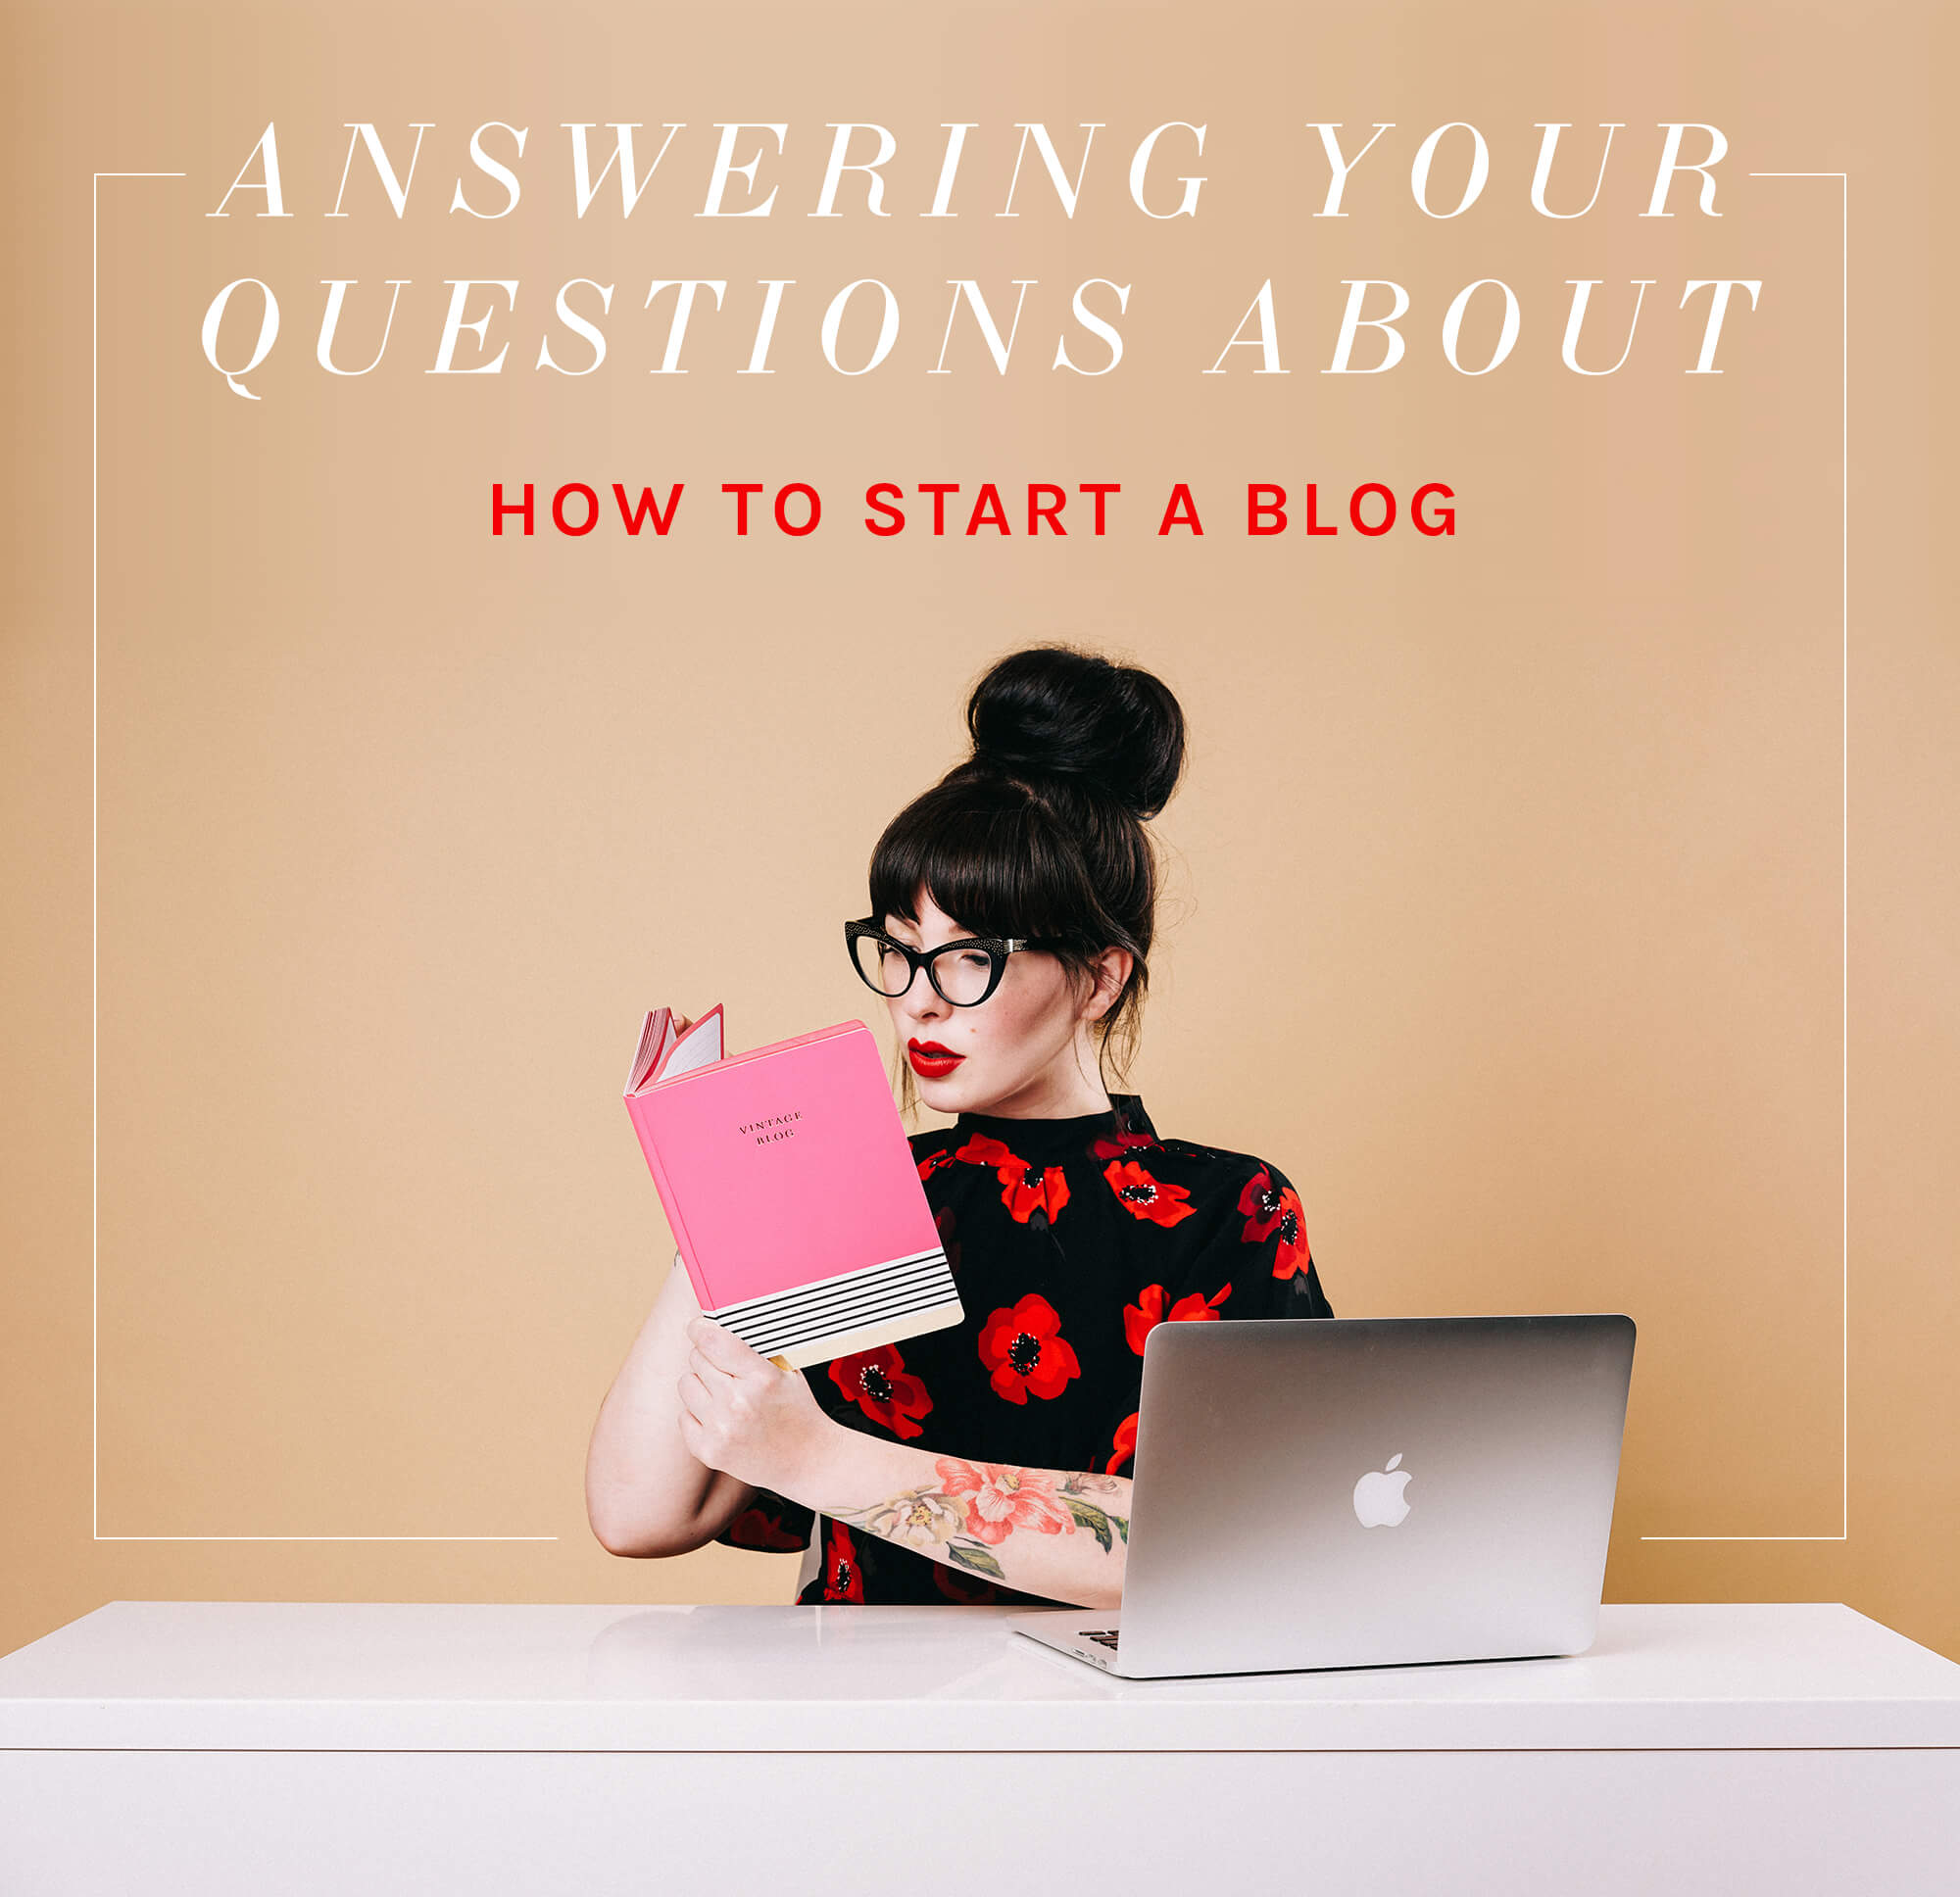 How To Start A Blog, Blogging FAQs